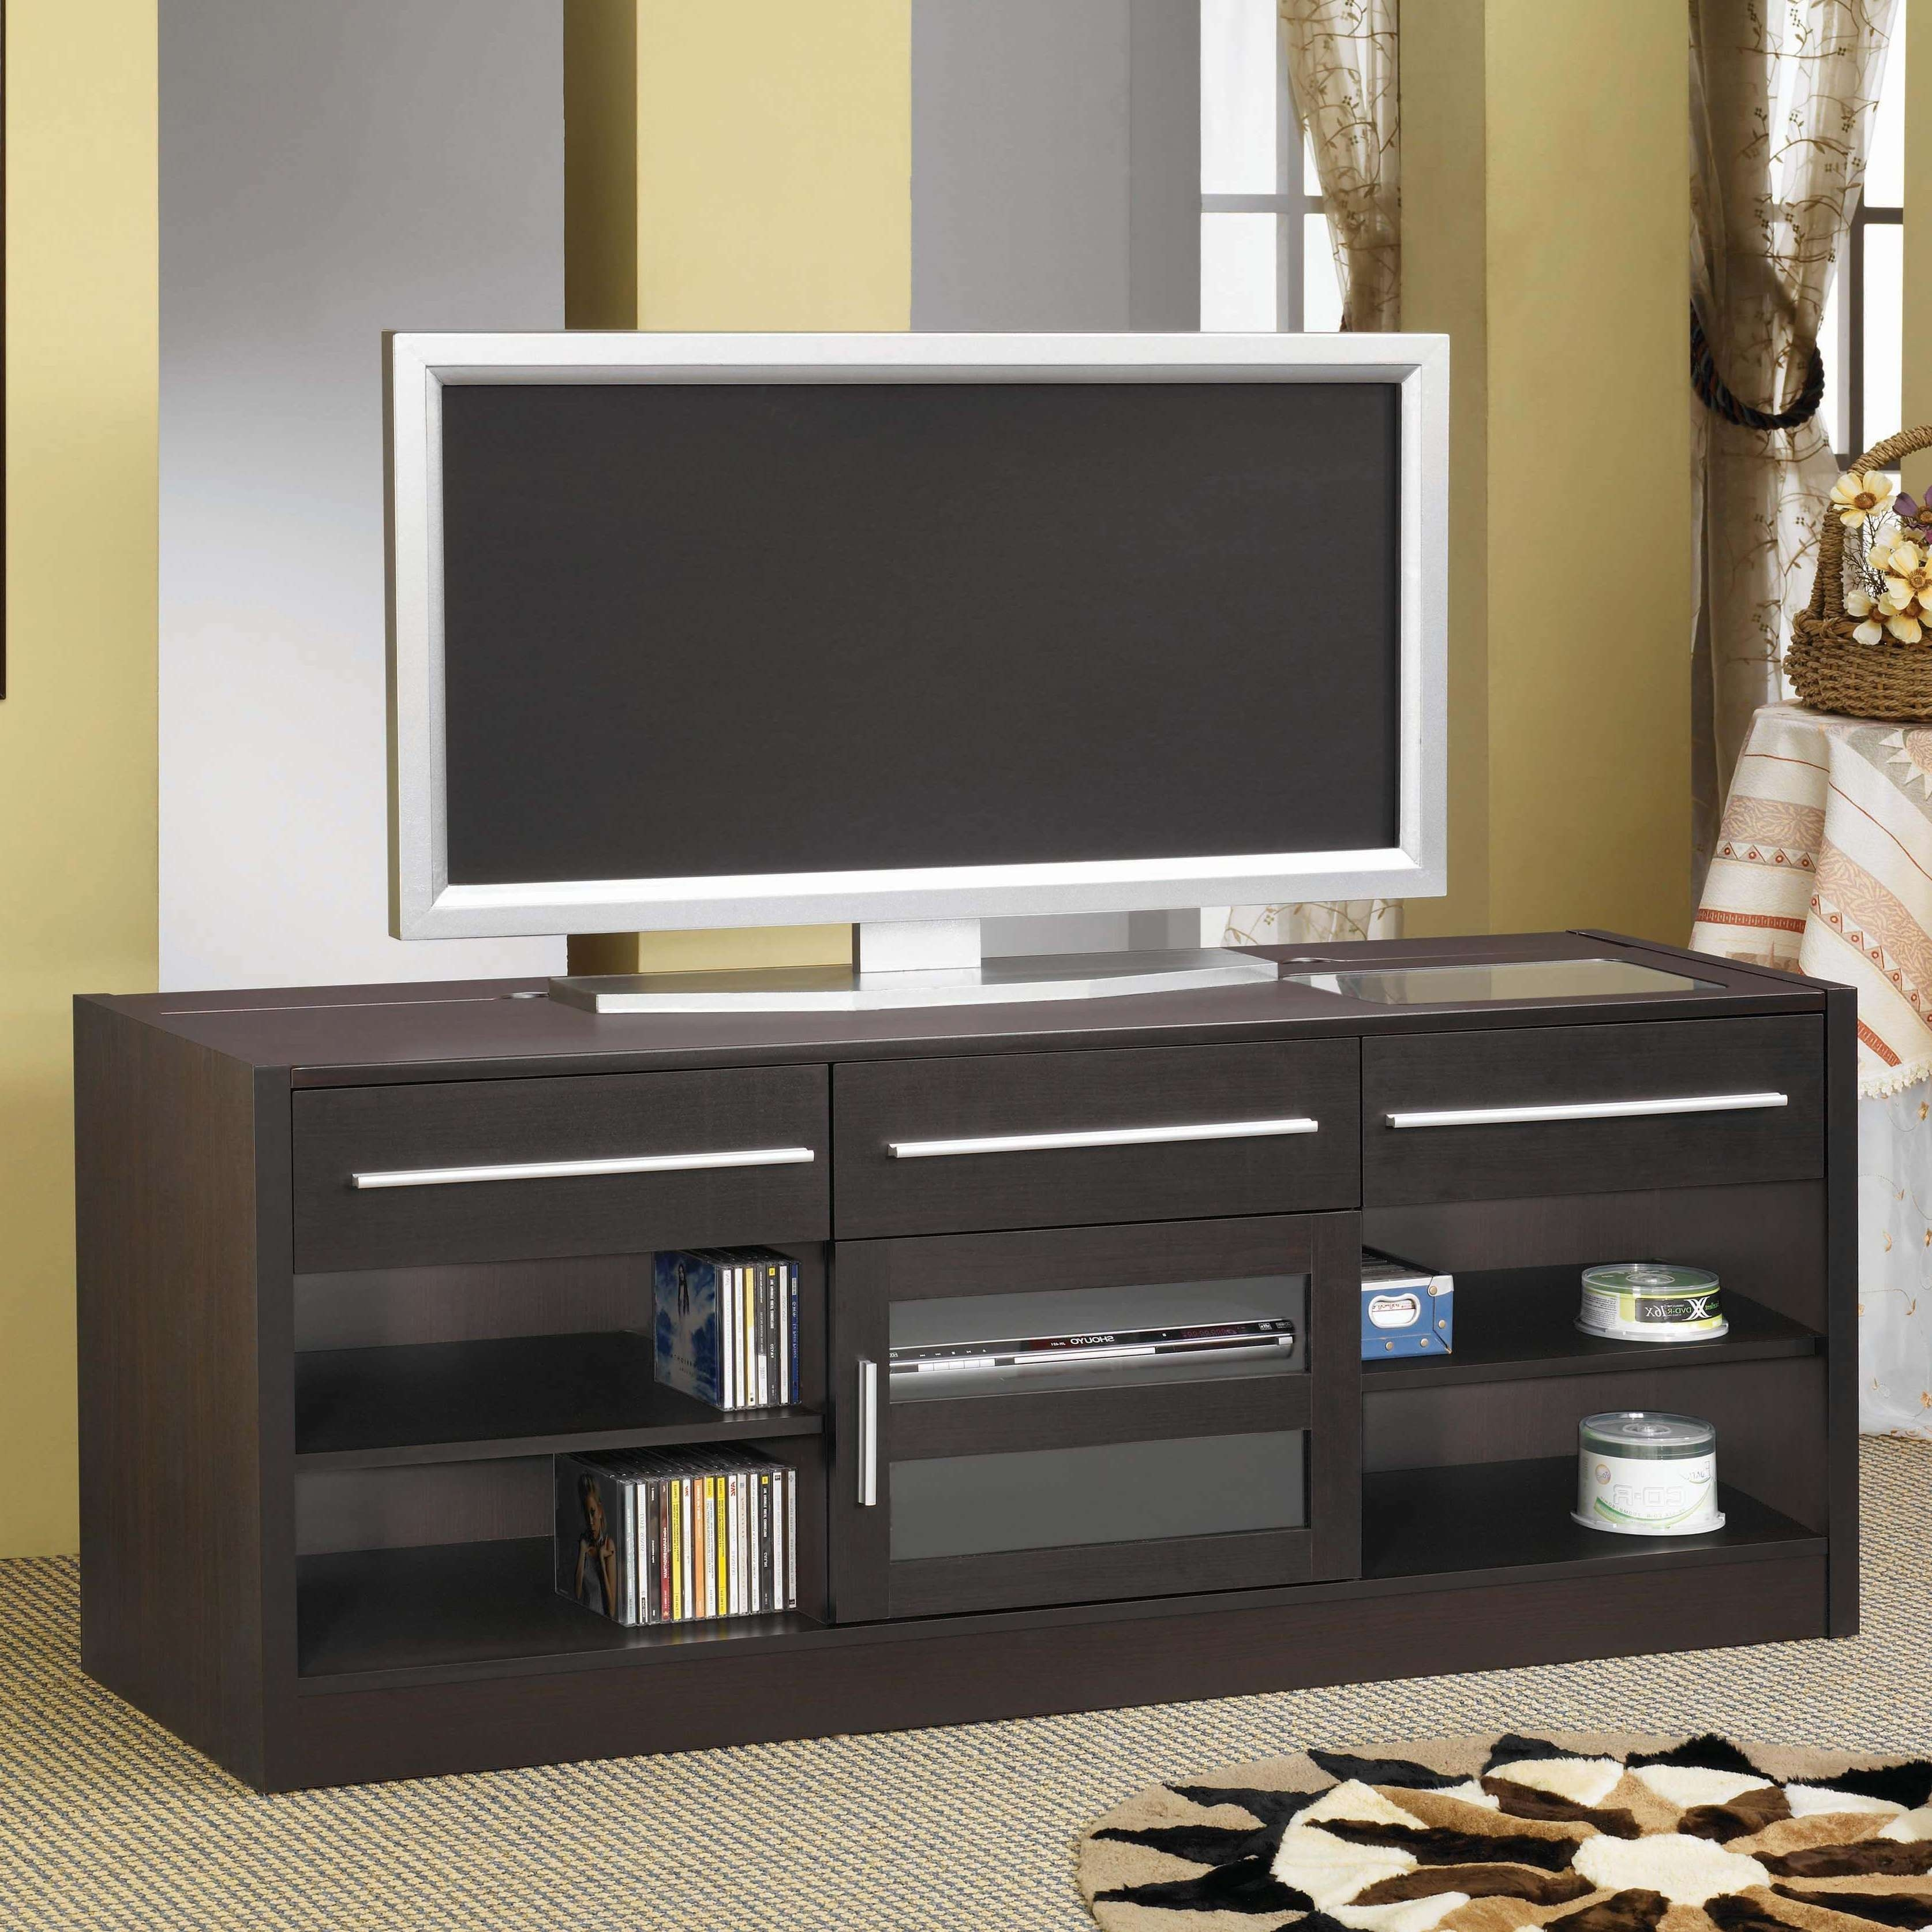 Furniture : Far Flung Breathtaking Corner Tv Stand For 55 Inch Throughout Contemporary Tv Stands For Flat Screens (View 8 of 20)